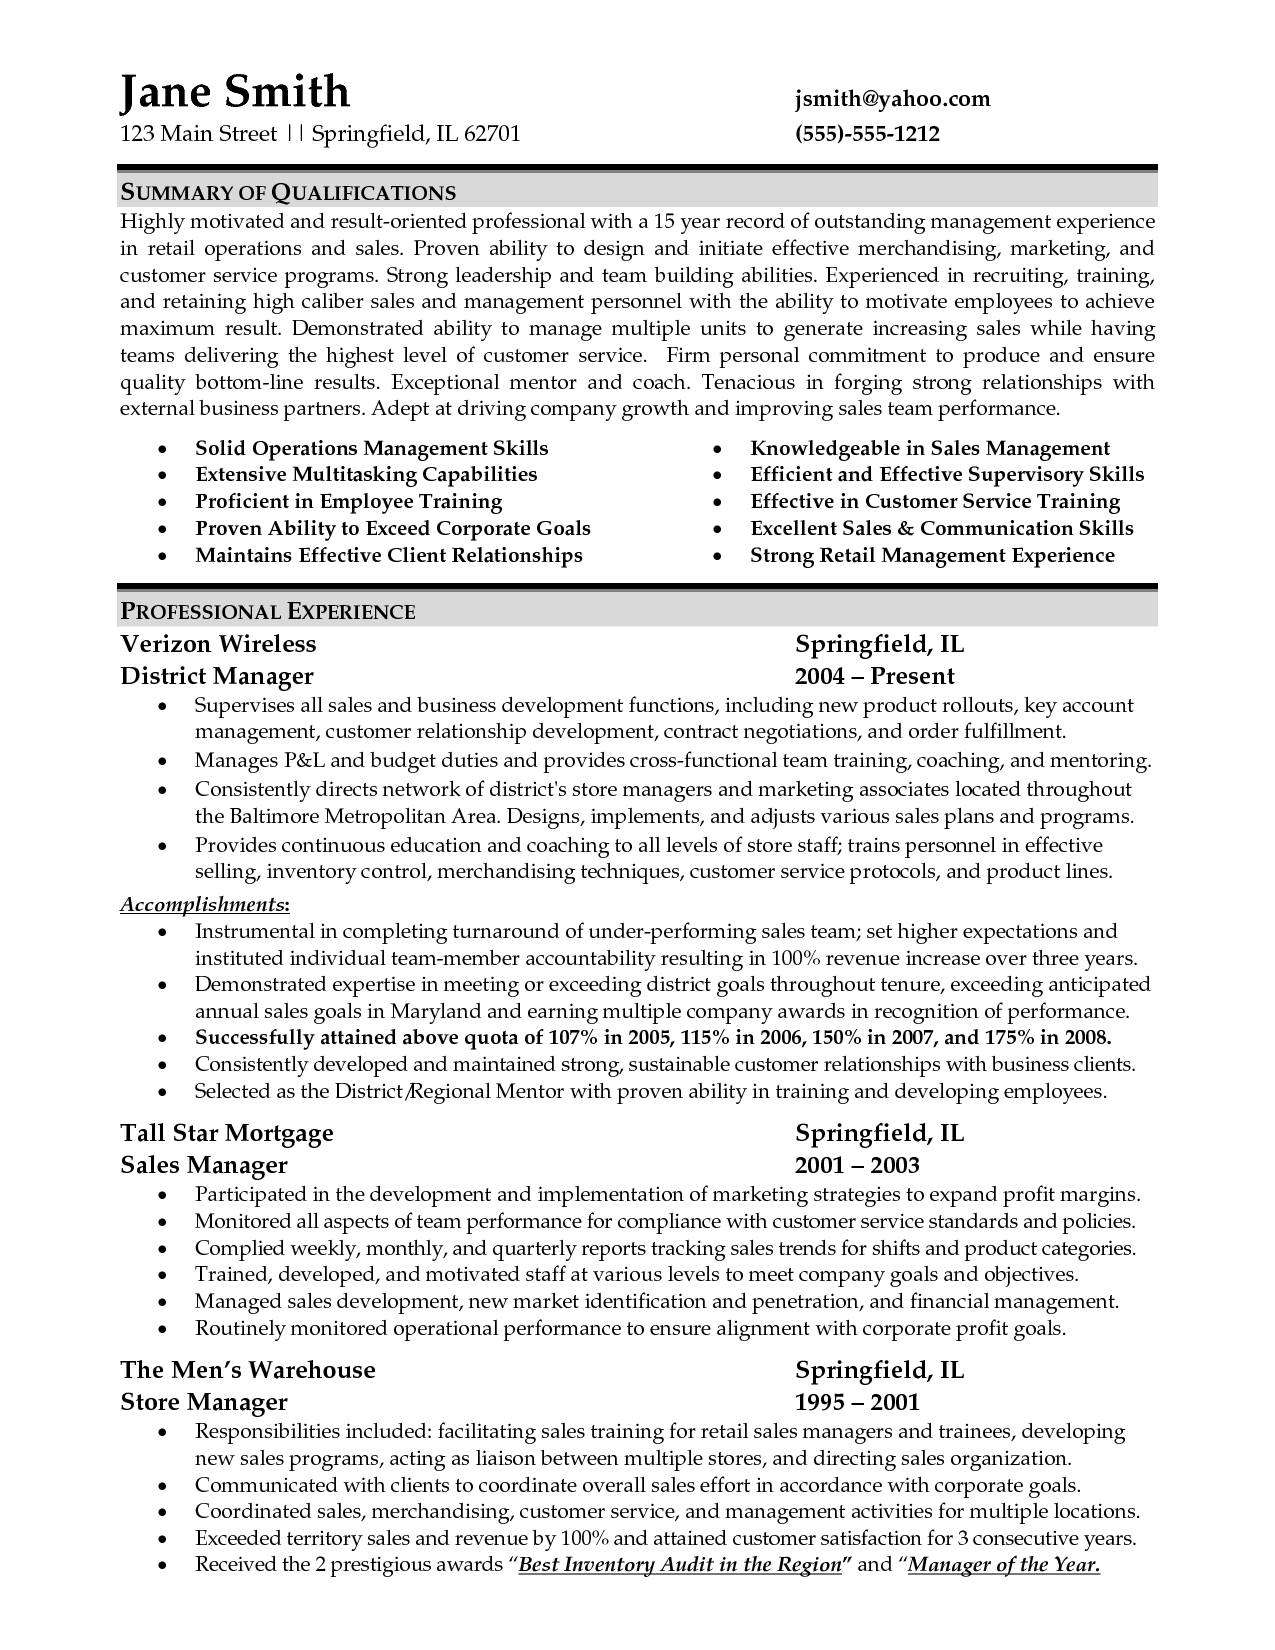 sample resume for retail management job retail store manager resume district manager resume summary - Sample Resume For Assistant Retail Manager